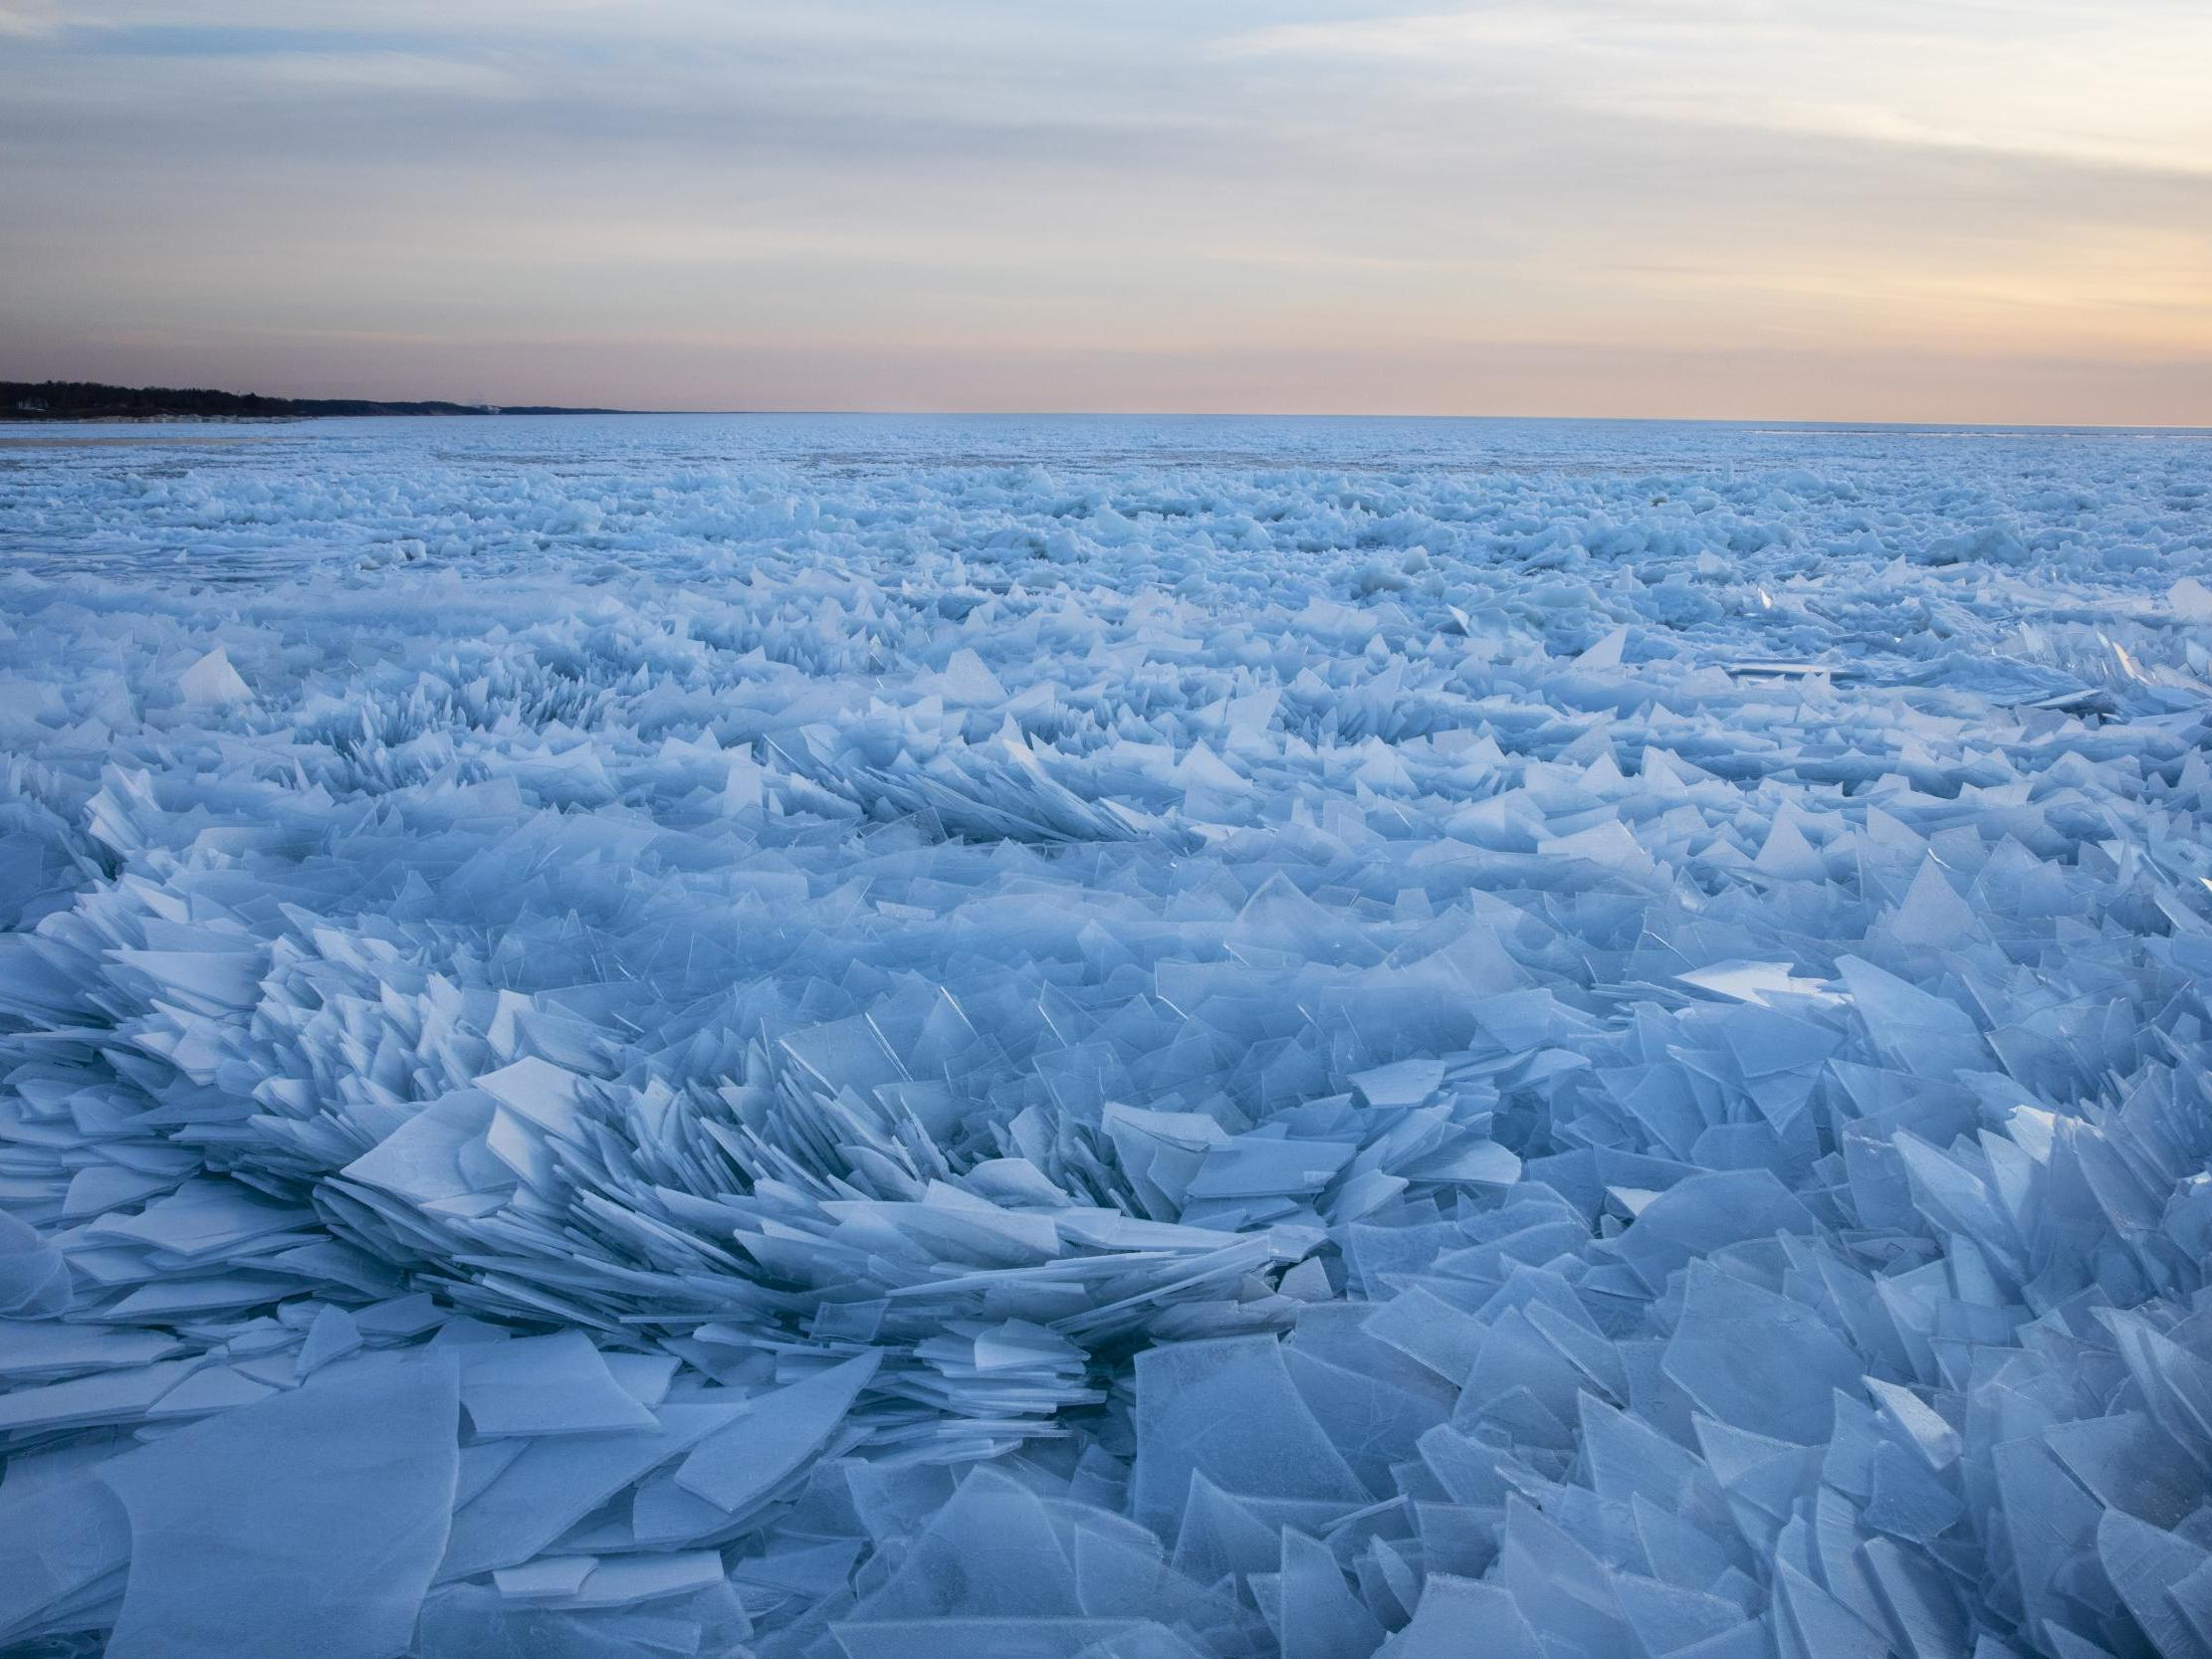 Lake Michigan covered in ice shards in mesmerising new pictures as spring arrives